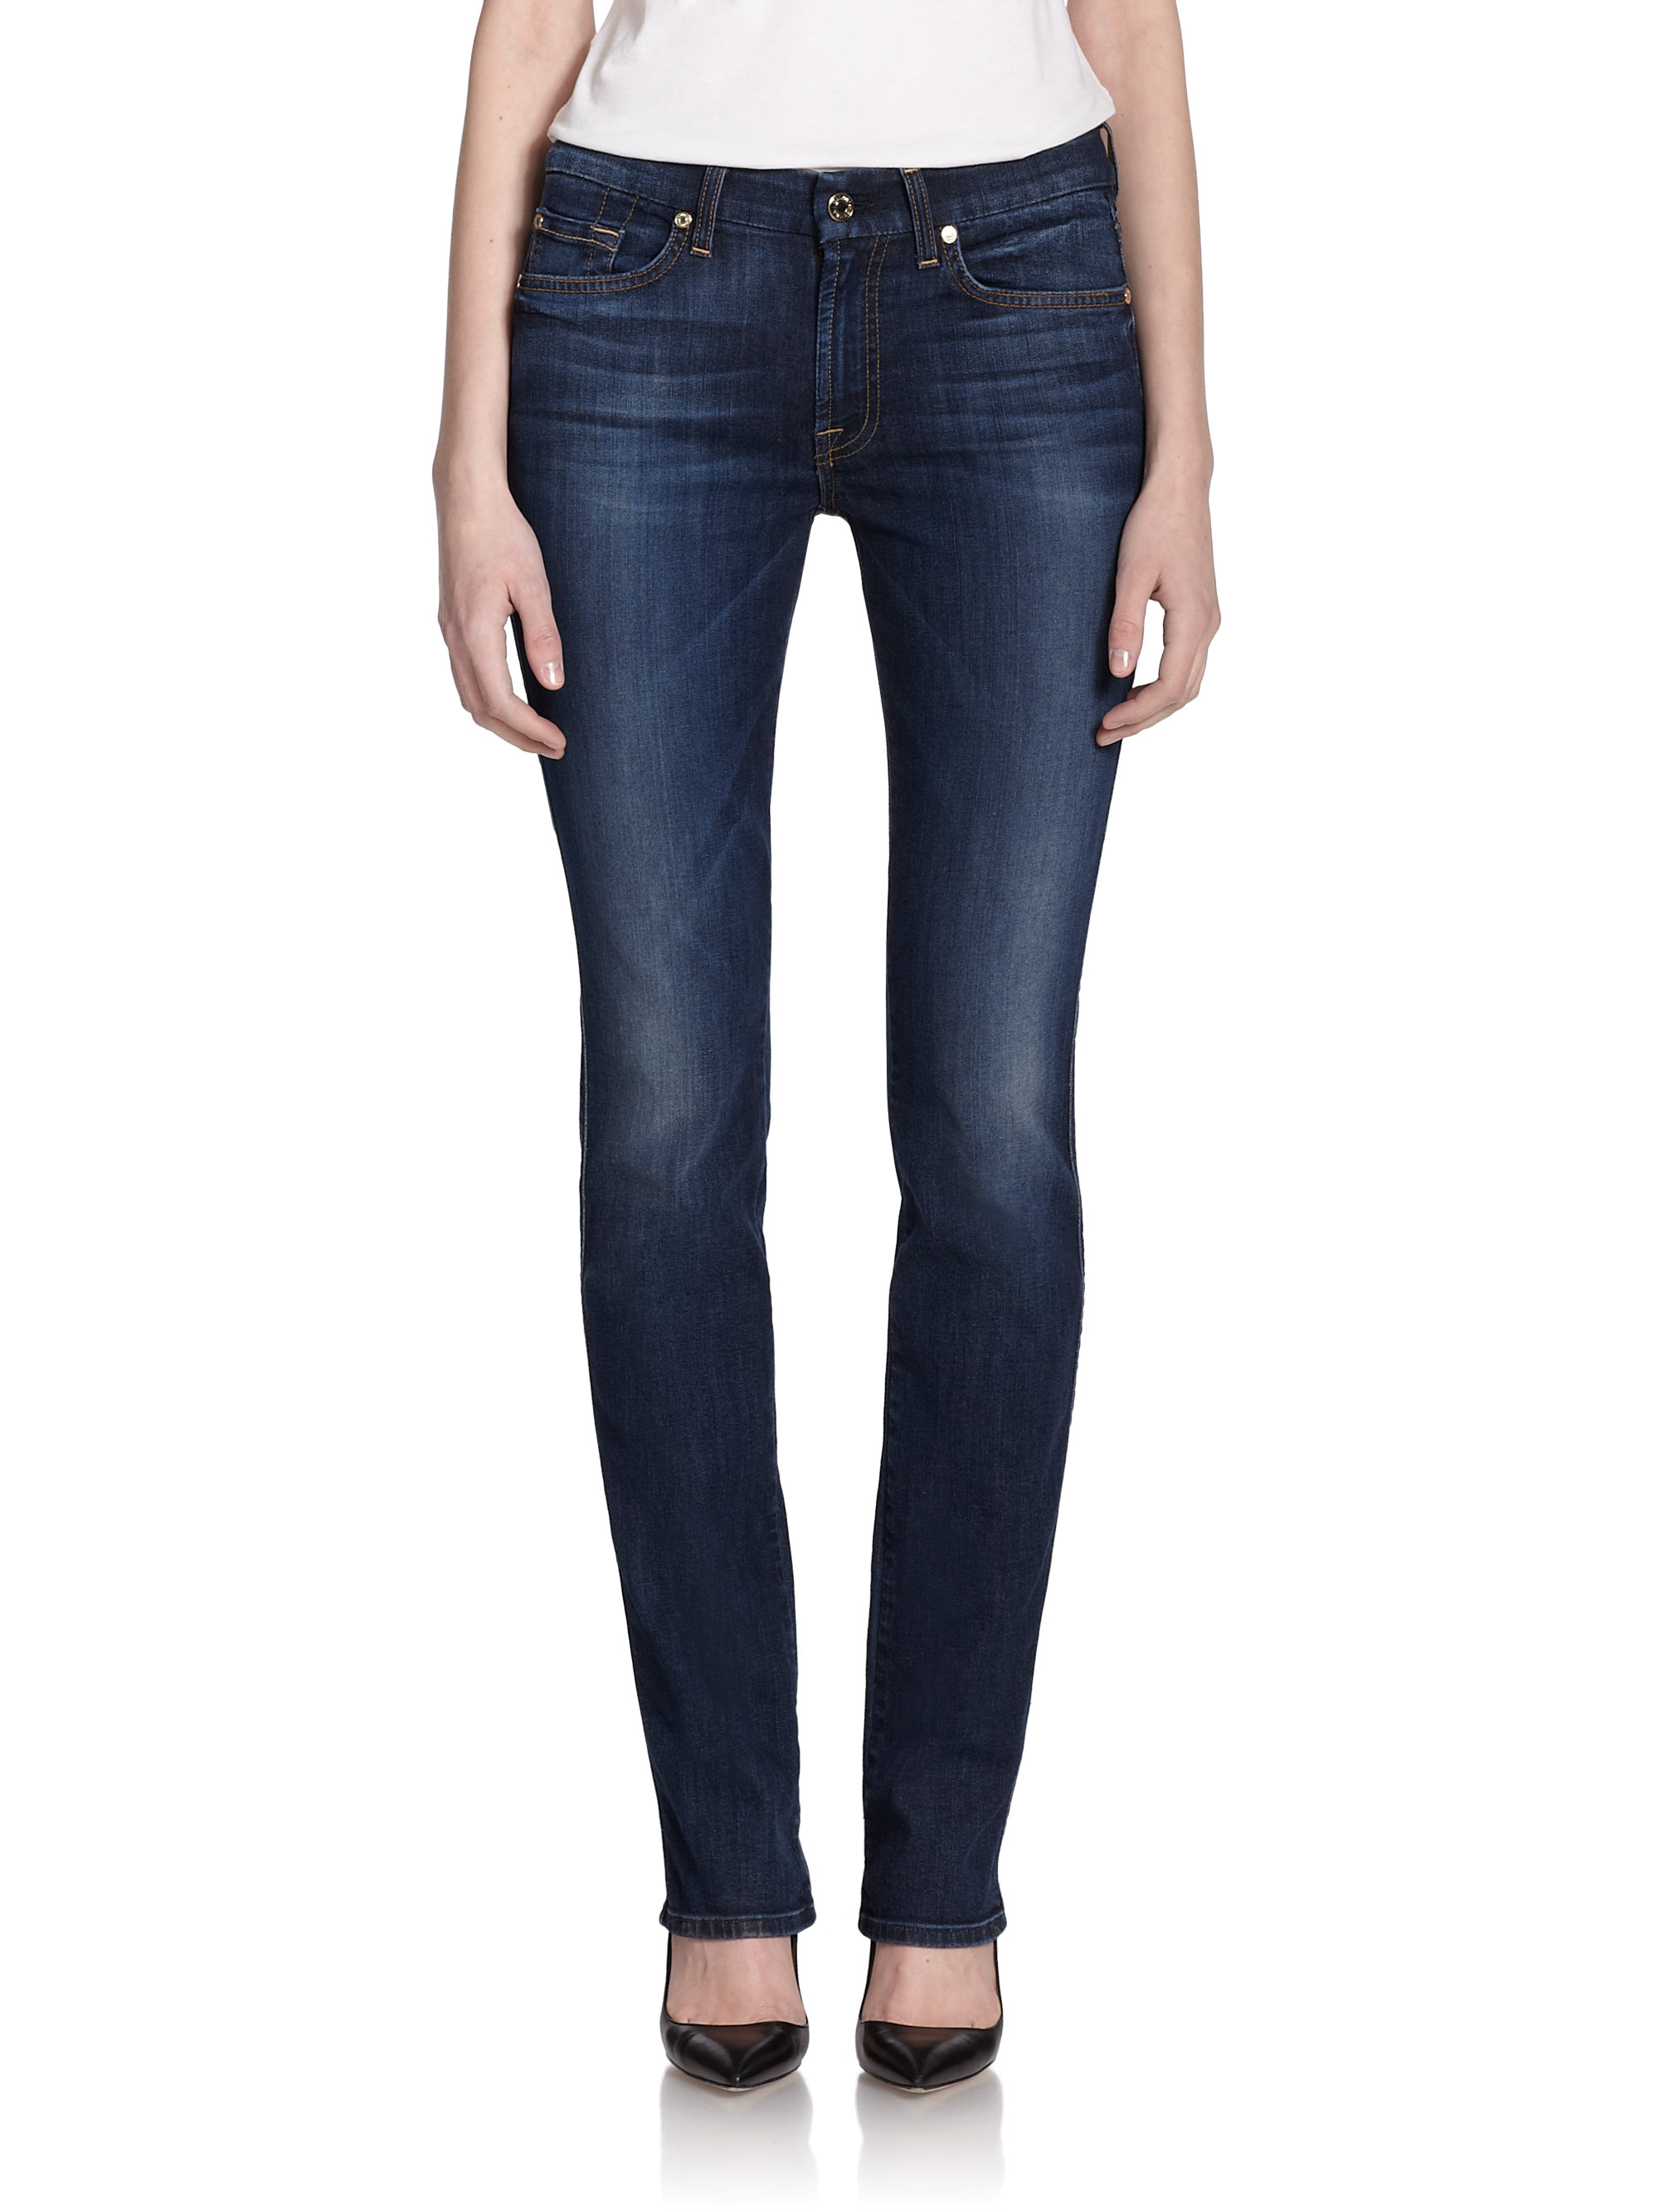 7 for all mankind Kimmie Straight-Leg Jeans in Blue | Lyst